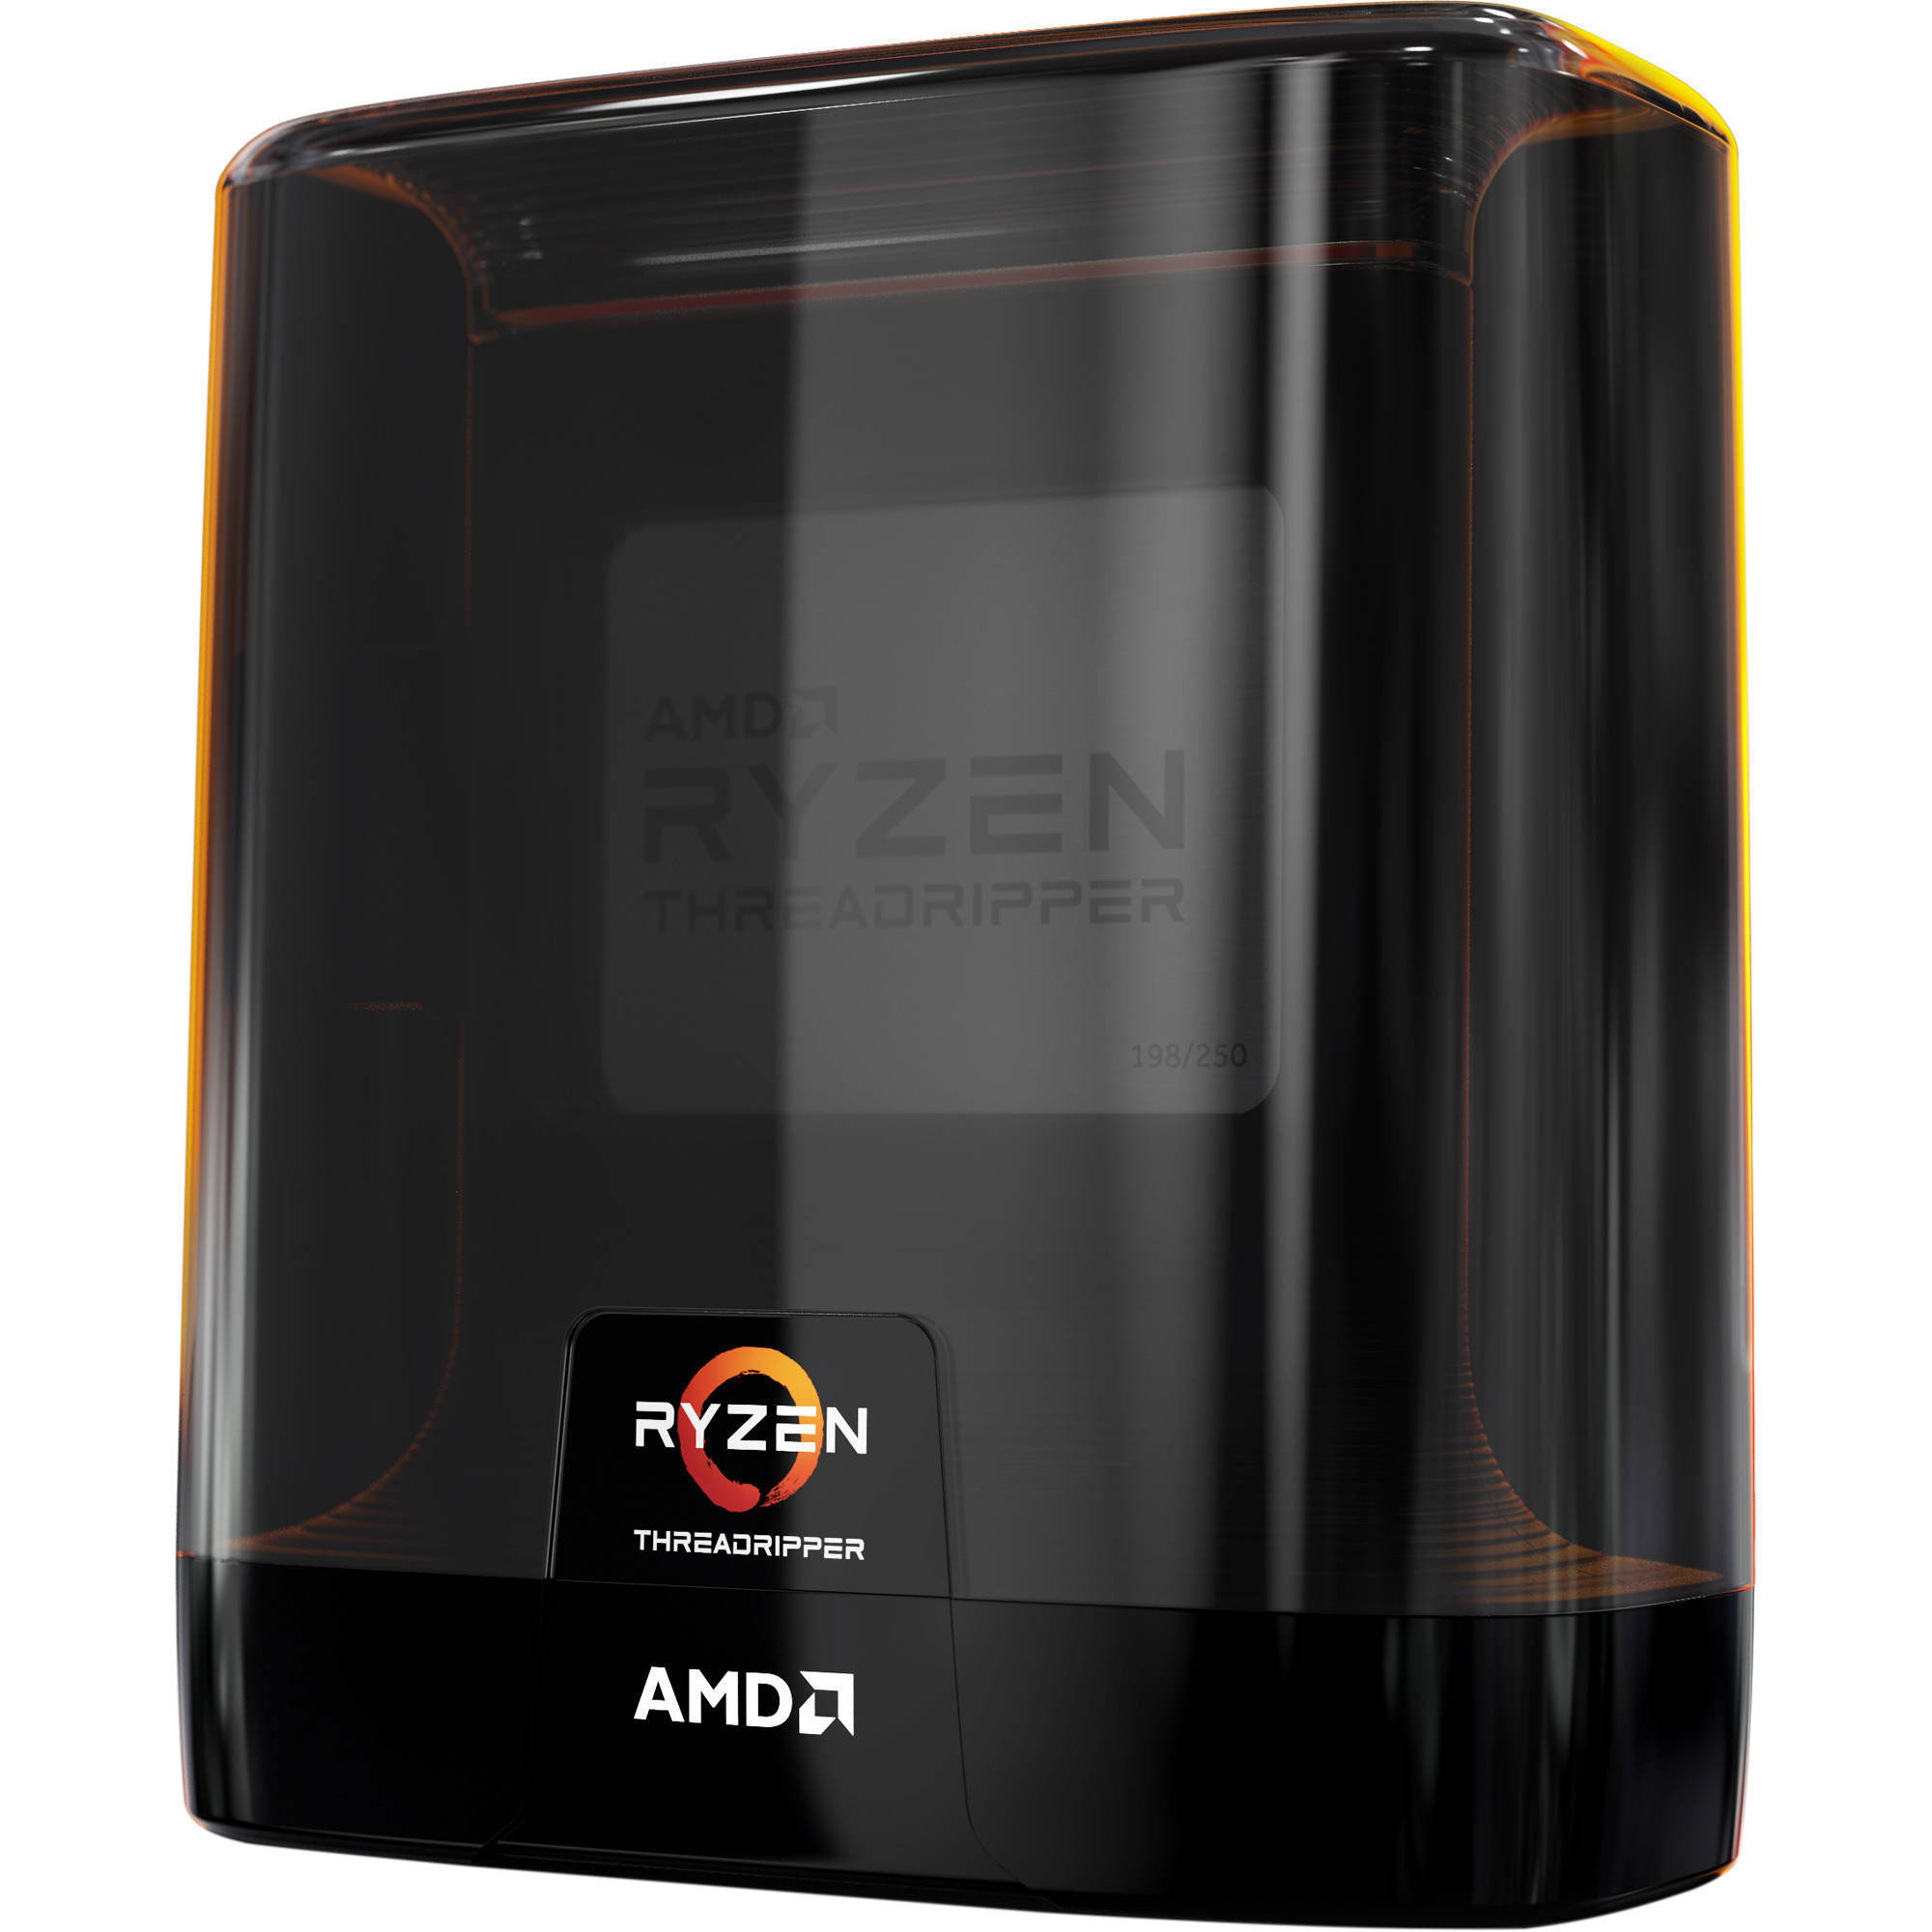 AMD Ryzen Threadripper 3990X 2.9 GHz 64-Core TRX4 Processor